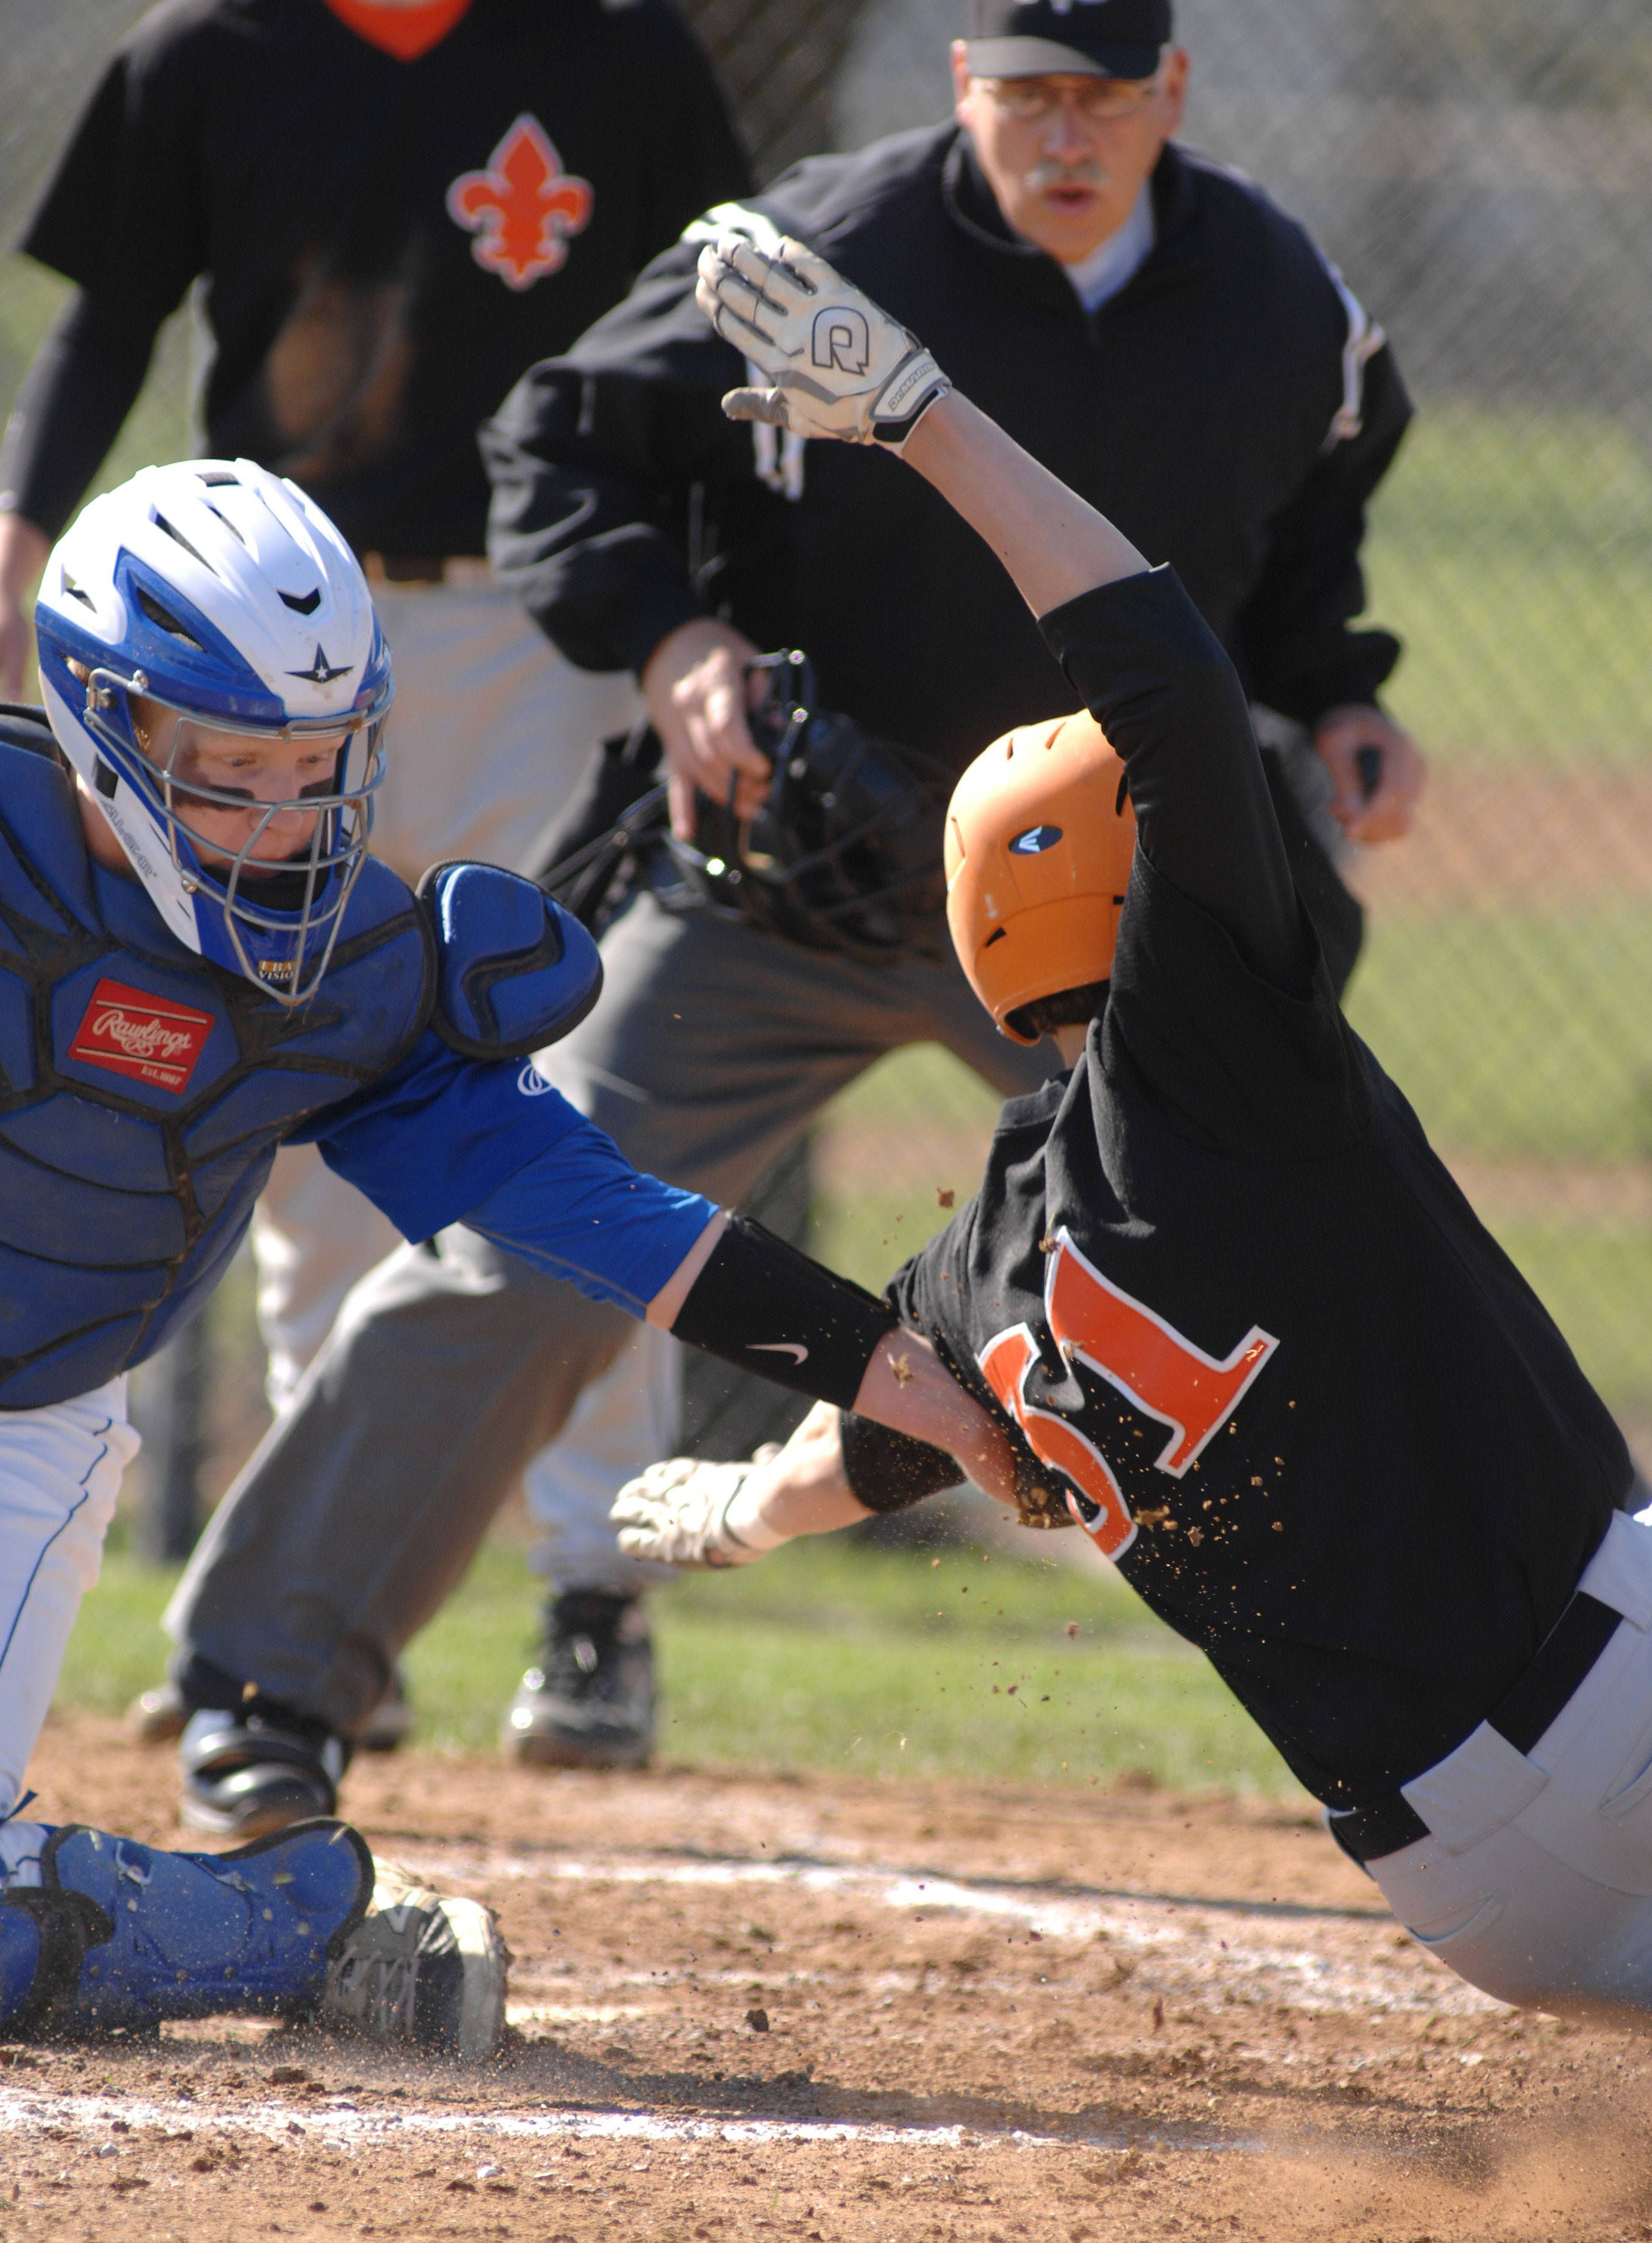 Geneva catcher Nathan Montgomery tags St. Charles East's Mike Settle in the second inning on Saturday, May 3. Originally counted as a run by umpires, it was later retracted as it was determined Settle never touched home plate.